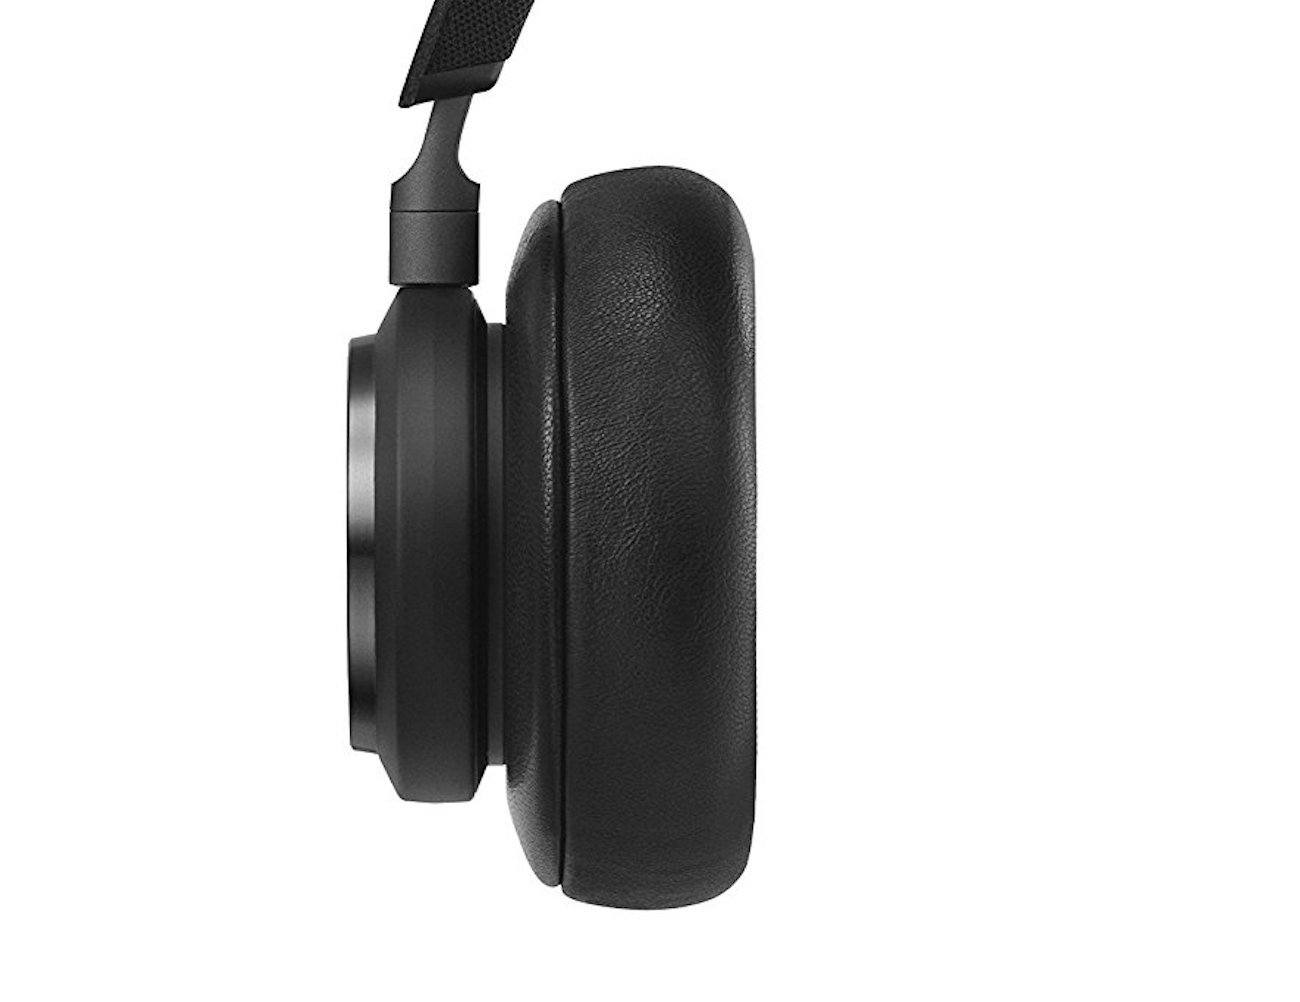 Beoplay H9 Wireless Headphones by B&O PLAY